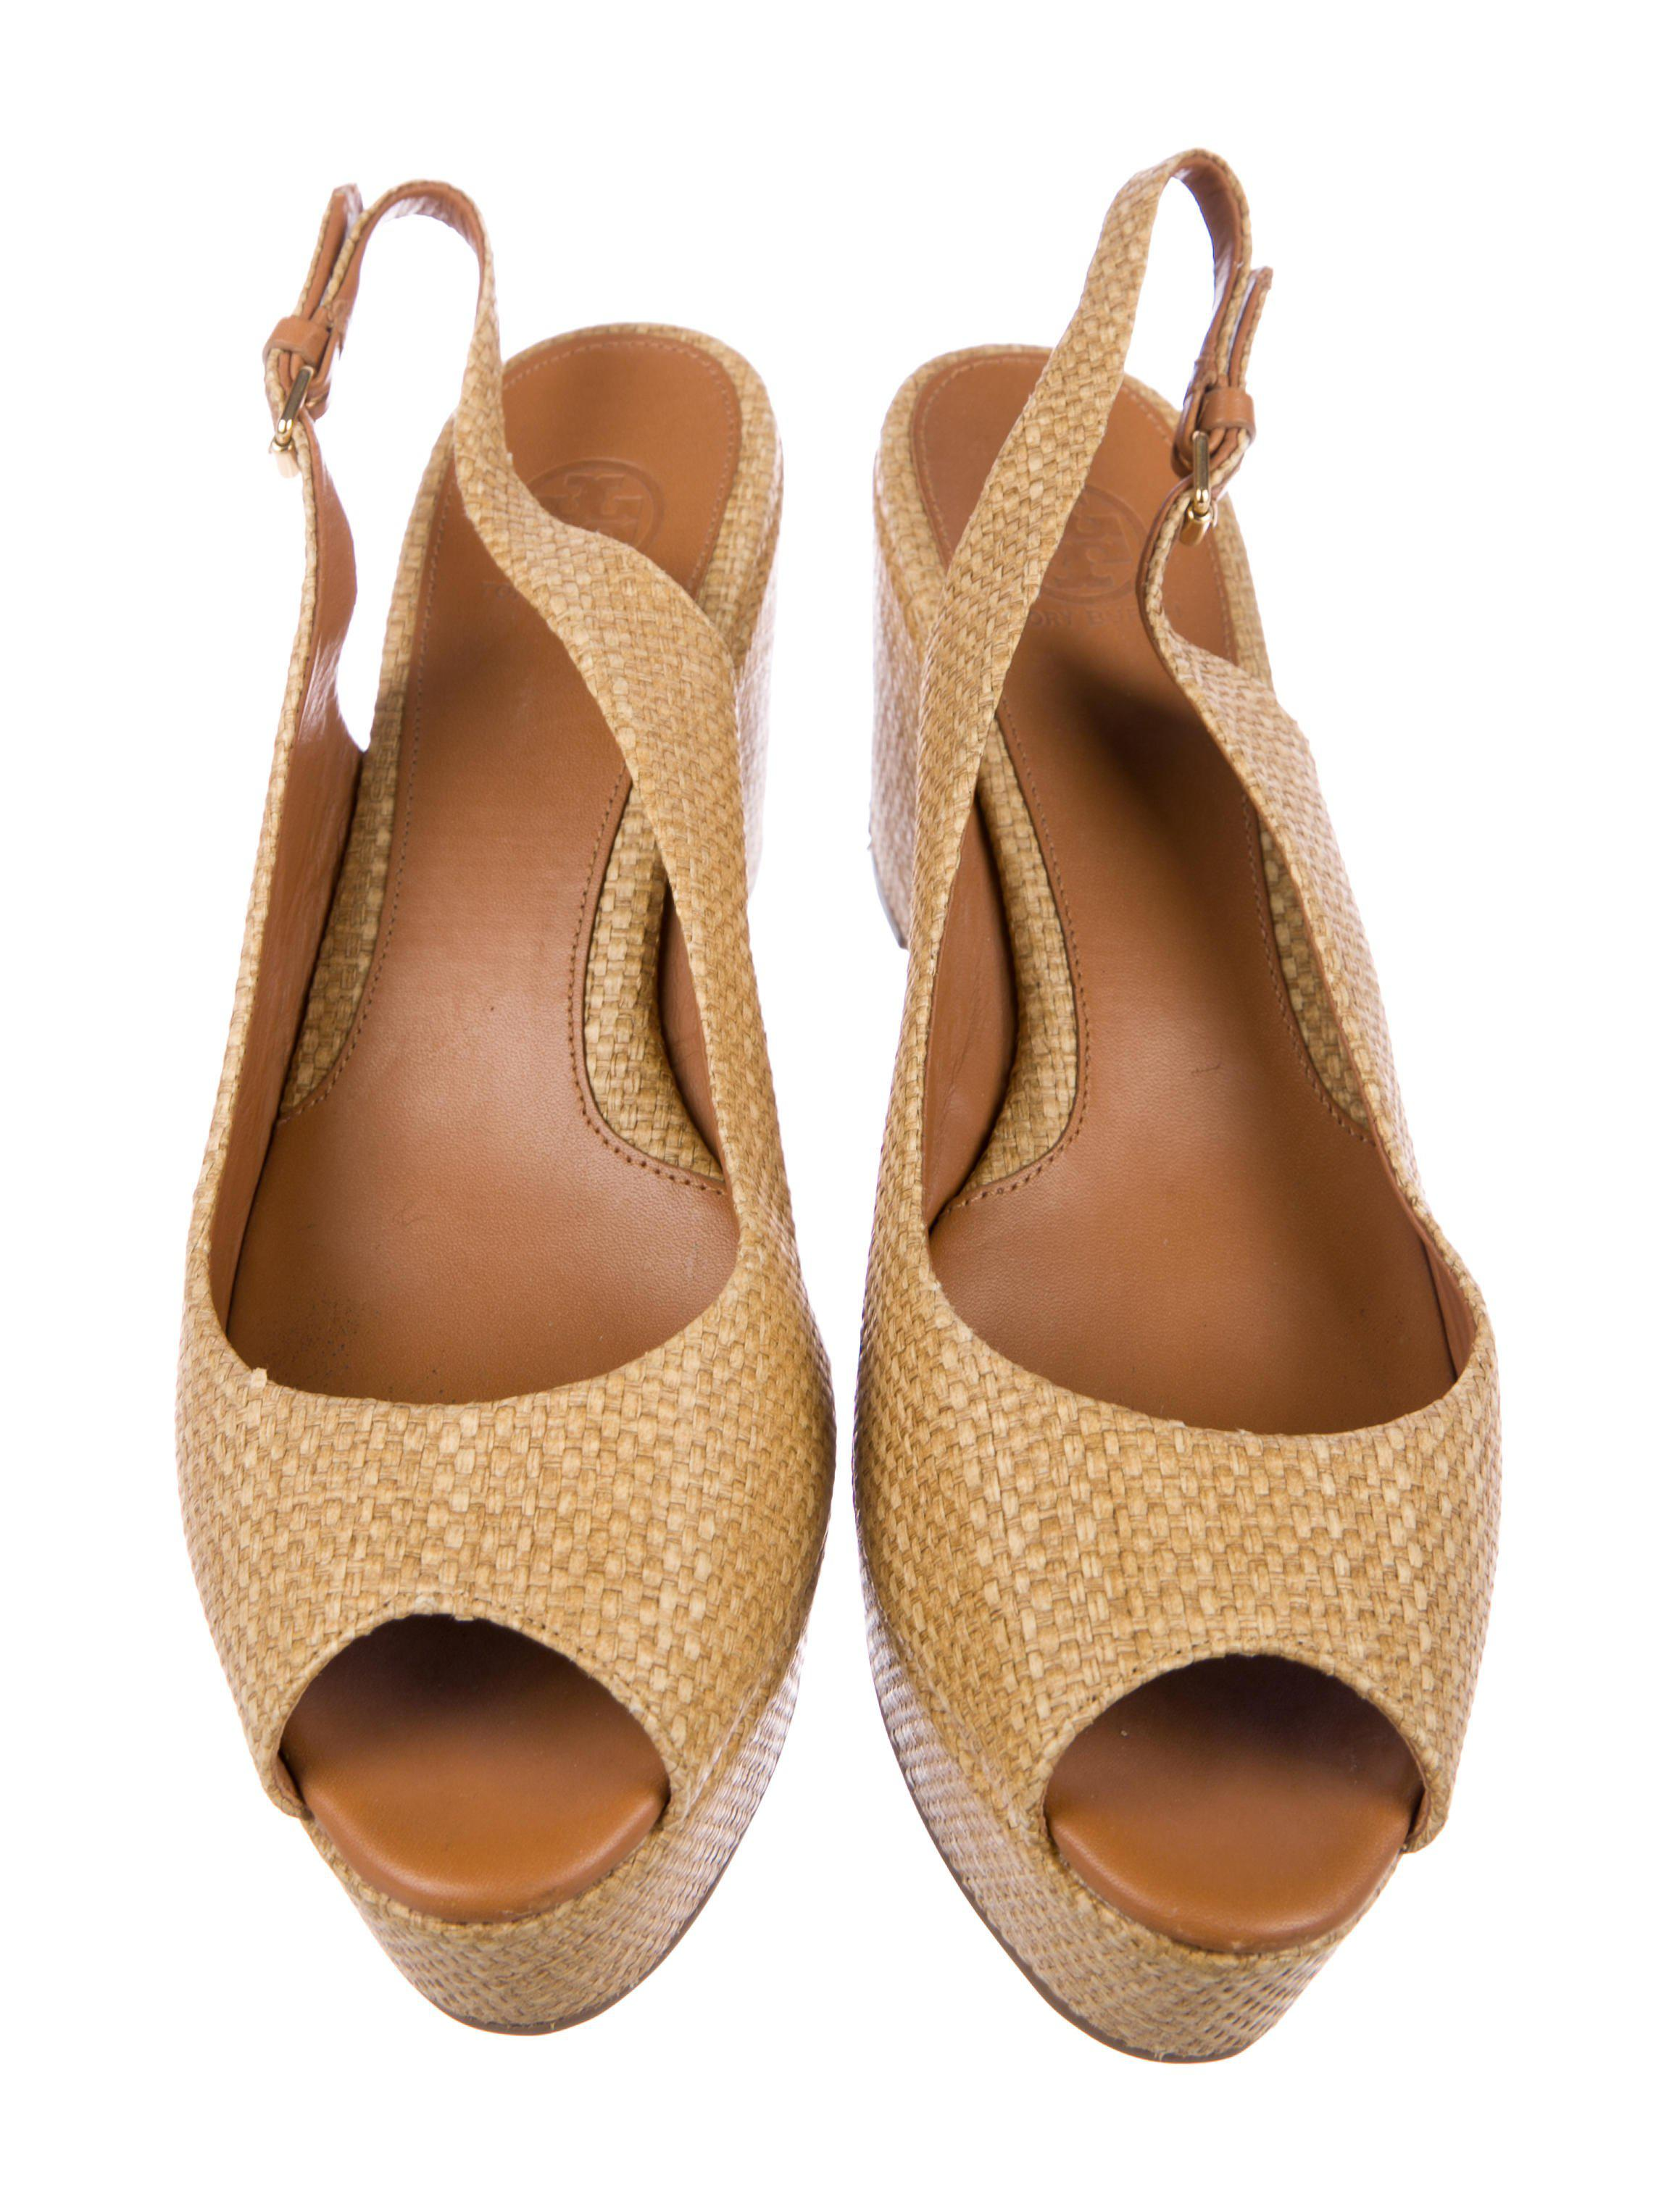 a3c09a0522b Tory Burch - Natural Rosalind Peep-toe Wedges Tan - Lyst. View fullscreen